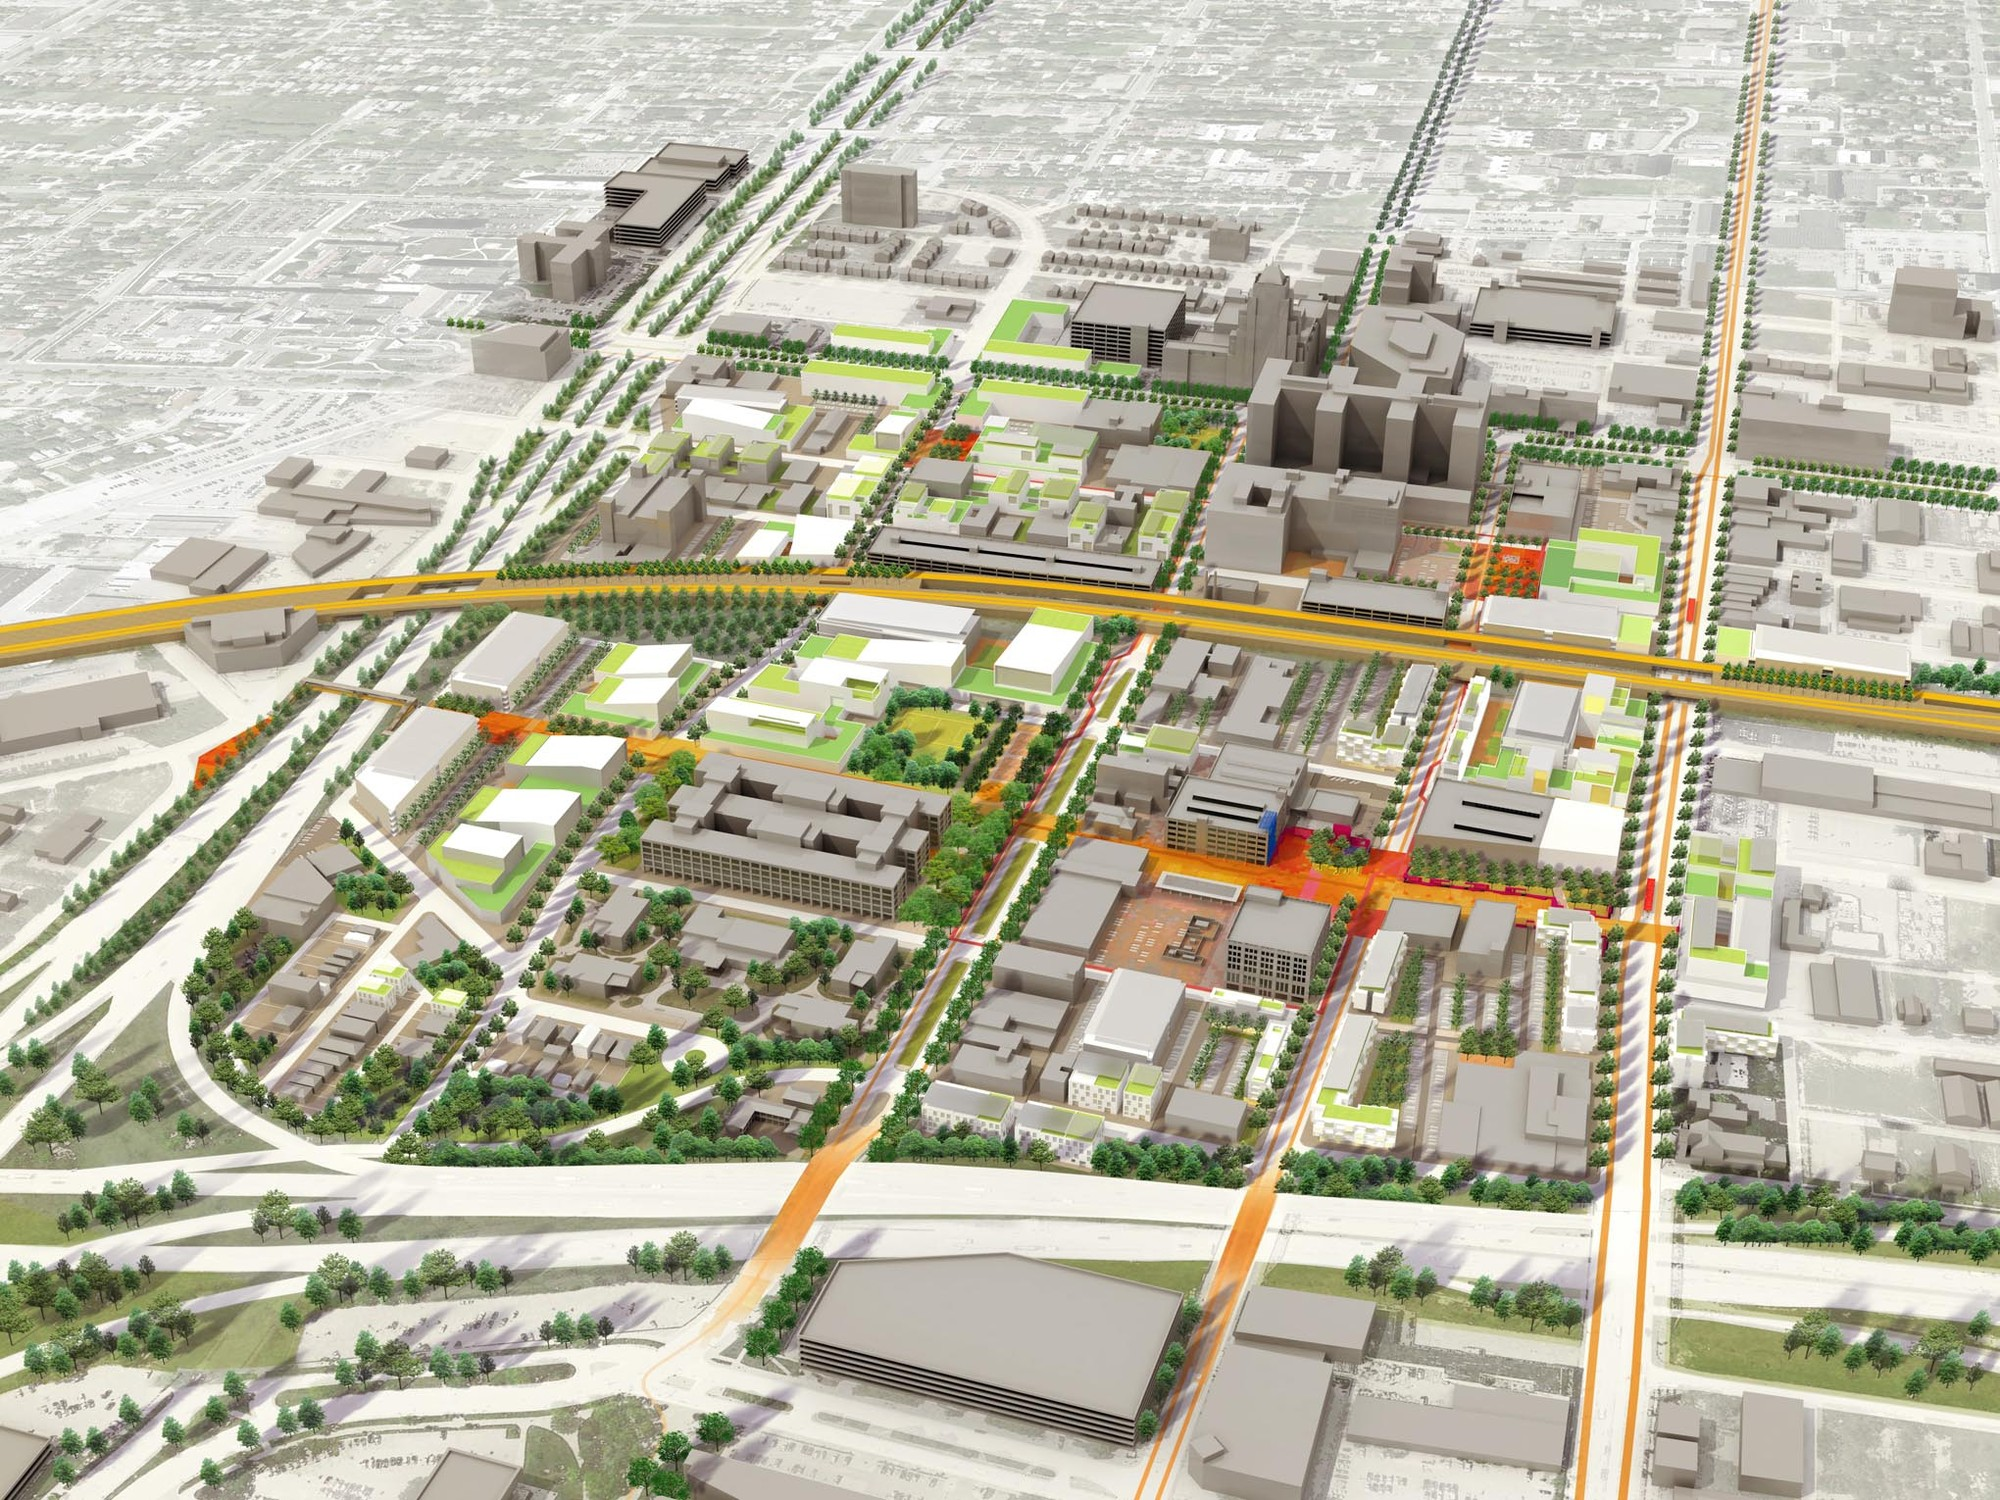 TechTown District Plan / Sasaki Associates, Courtesy of Sasaki Associates